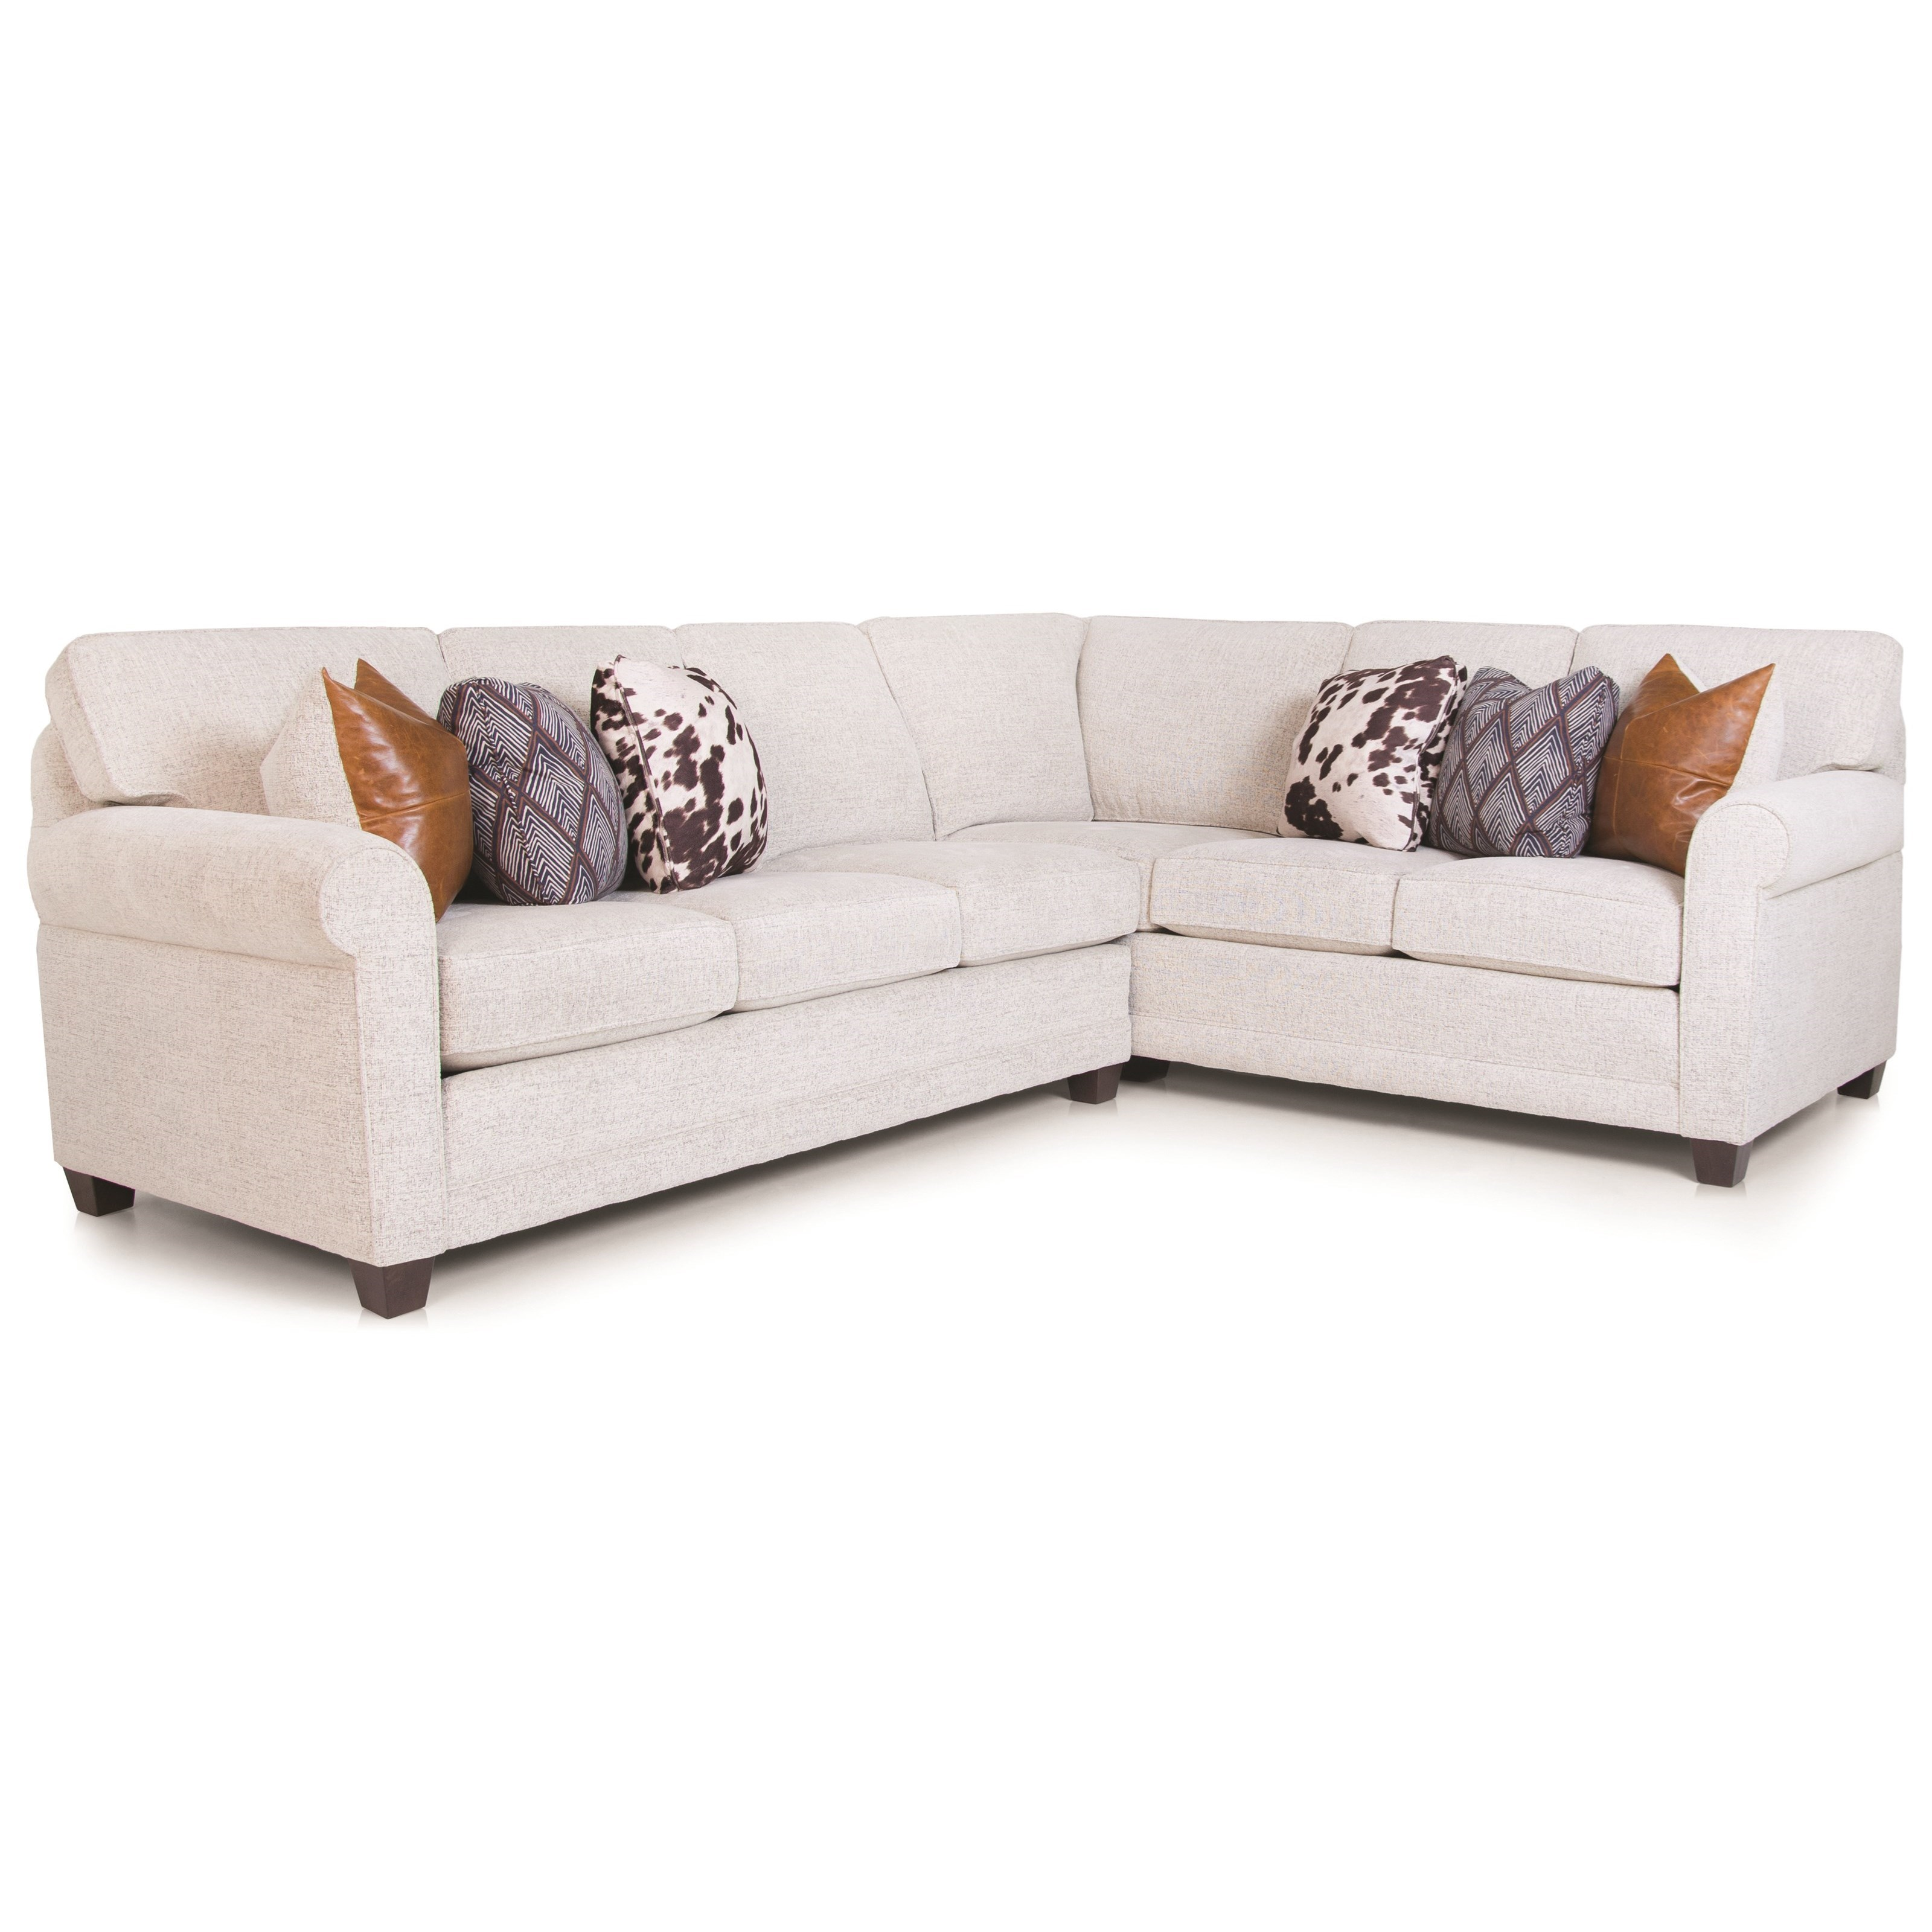 366 2-pc Sectional by Smith Brothers at Gill Brothers Furniture